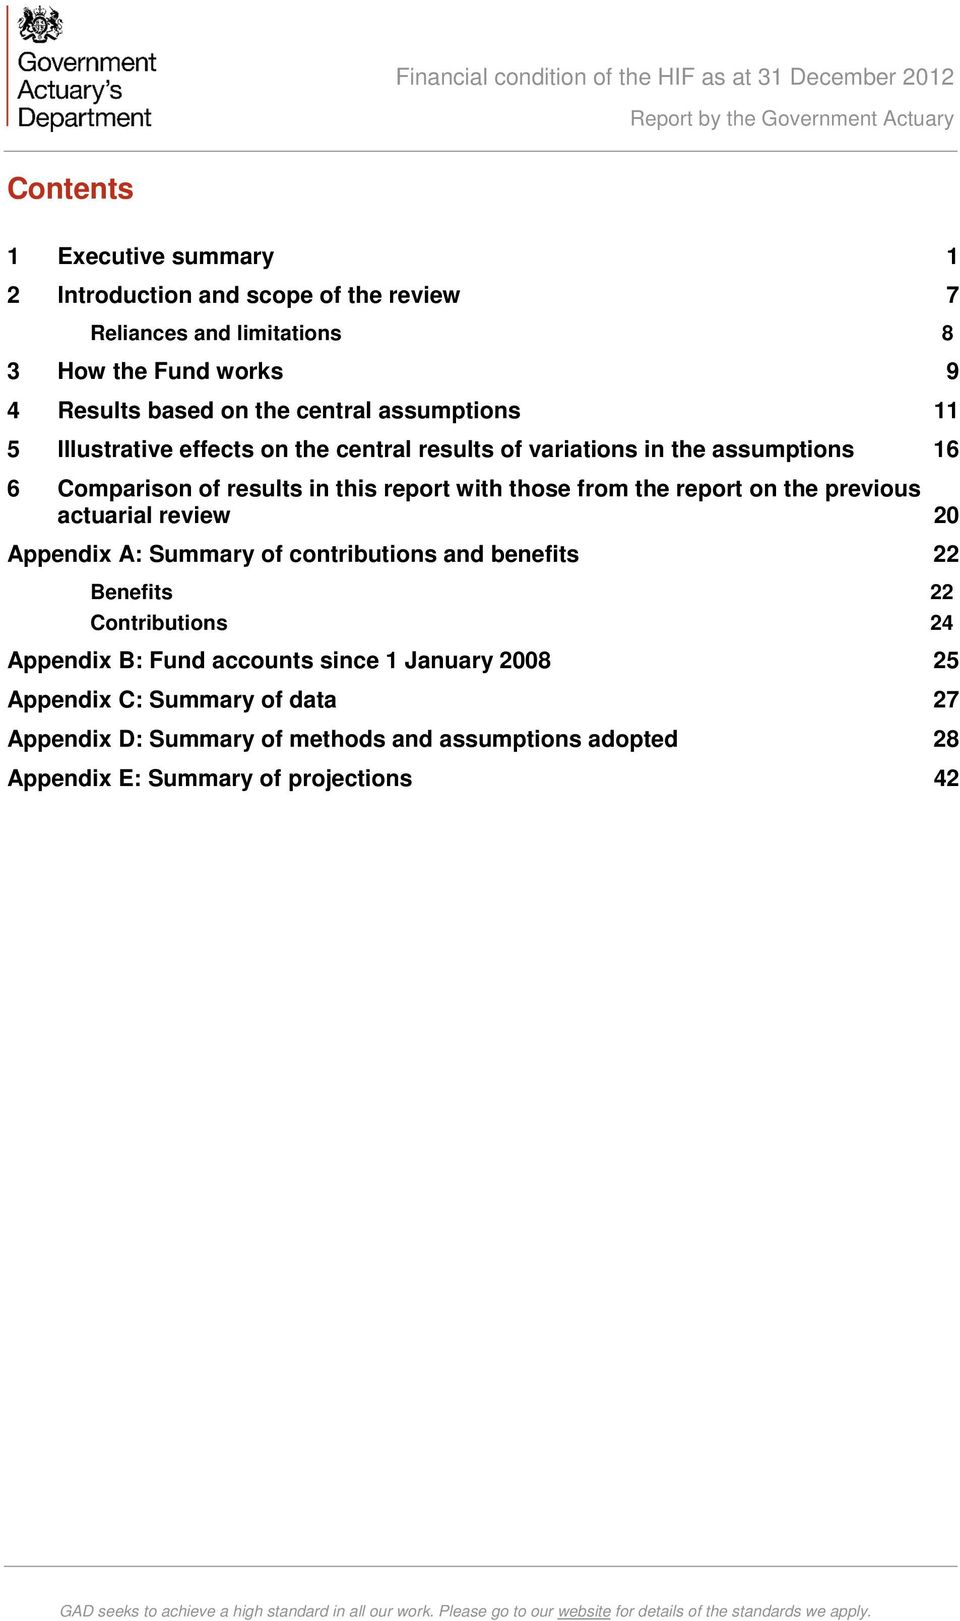 Appendix A: Summary of contributions and benefits 22 Benefits 22 Contributions 24 Appendix B: Fund accounts since 1 January 2008 25 Appendix C: Summary of data 27 Appendix D: Summary